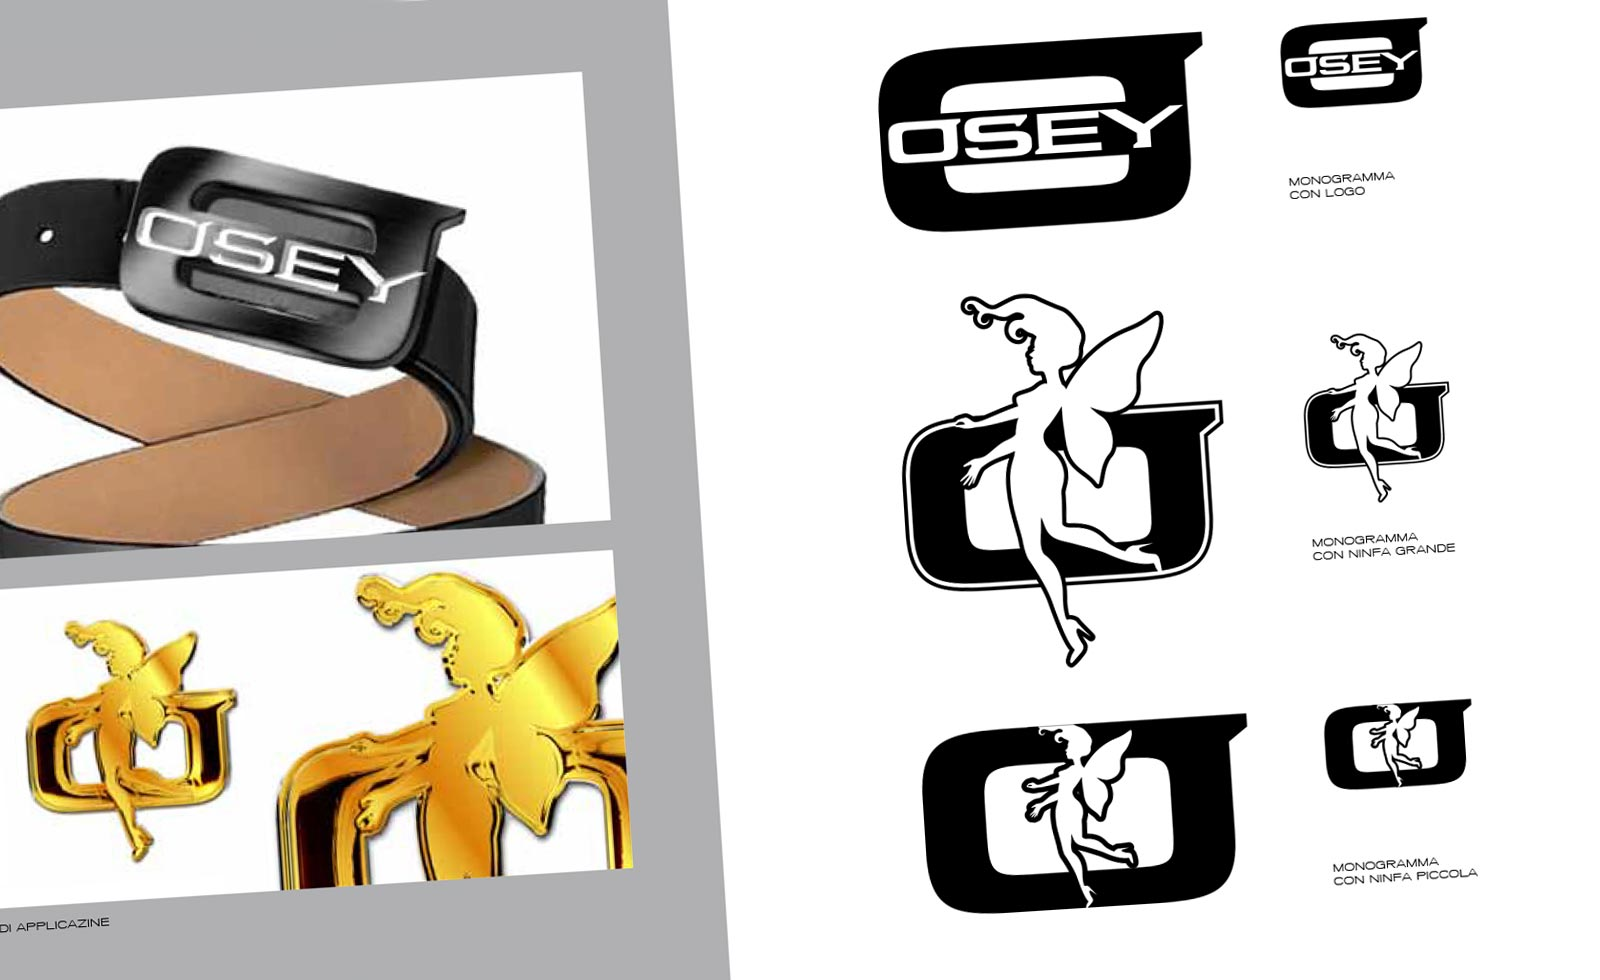 obey o6 shoes rebranding product applications logo